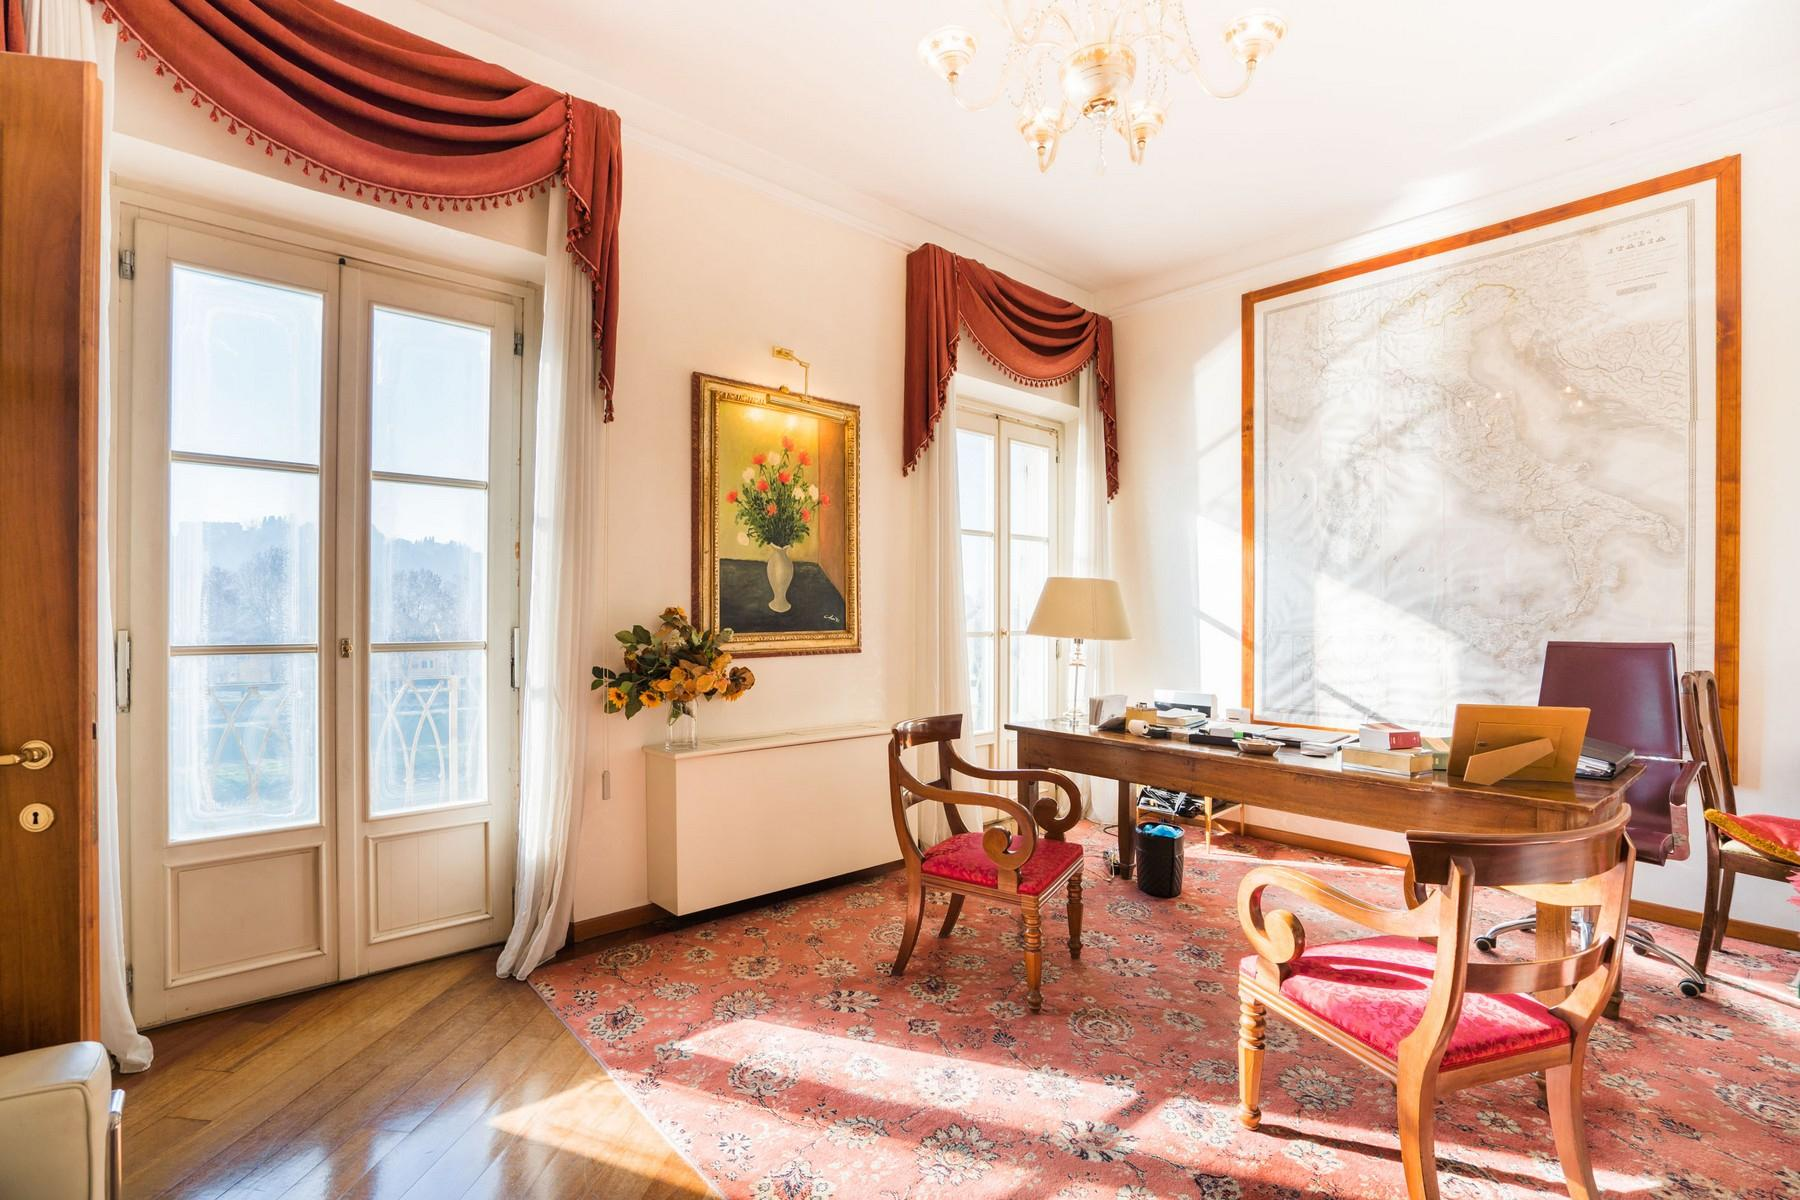 Luxury apartment overlooking the Arno River - 3